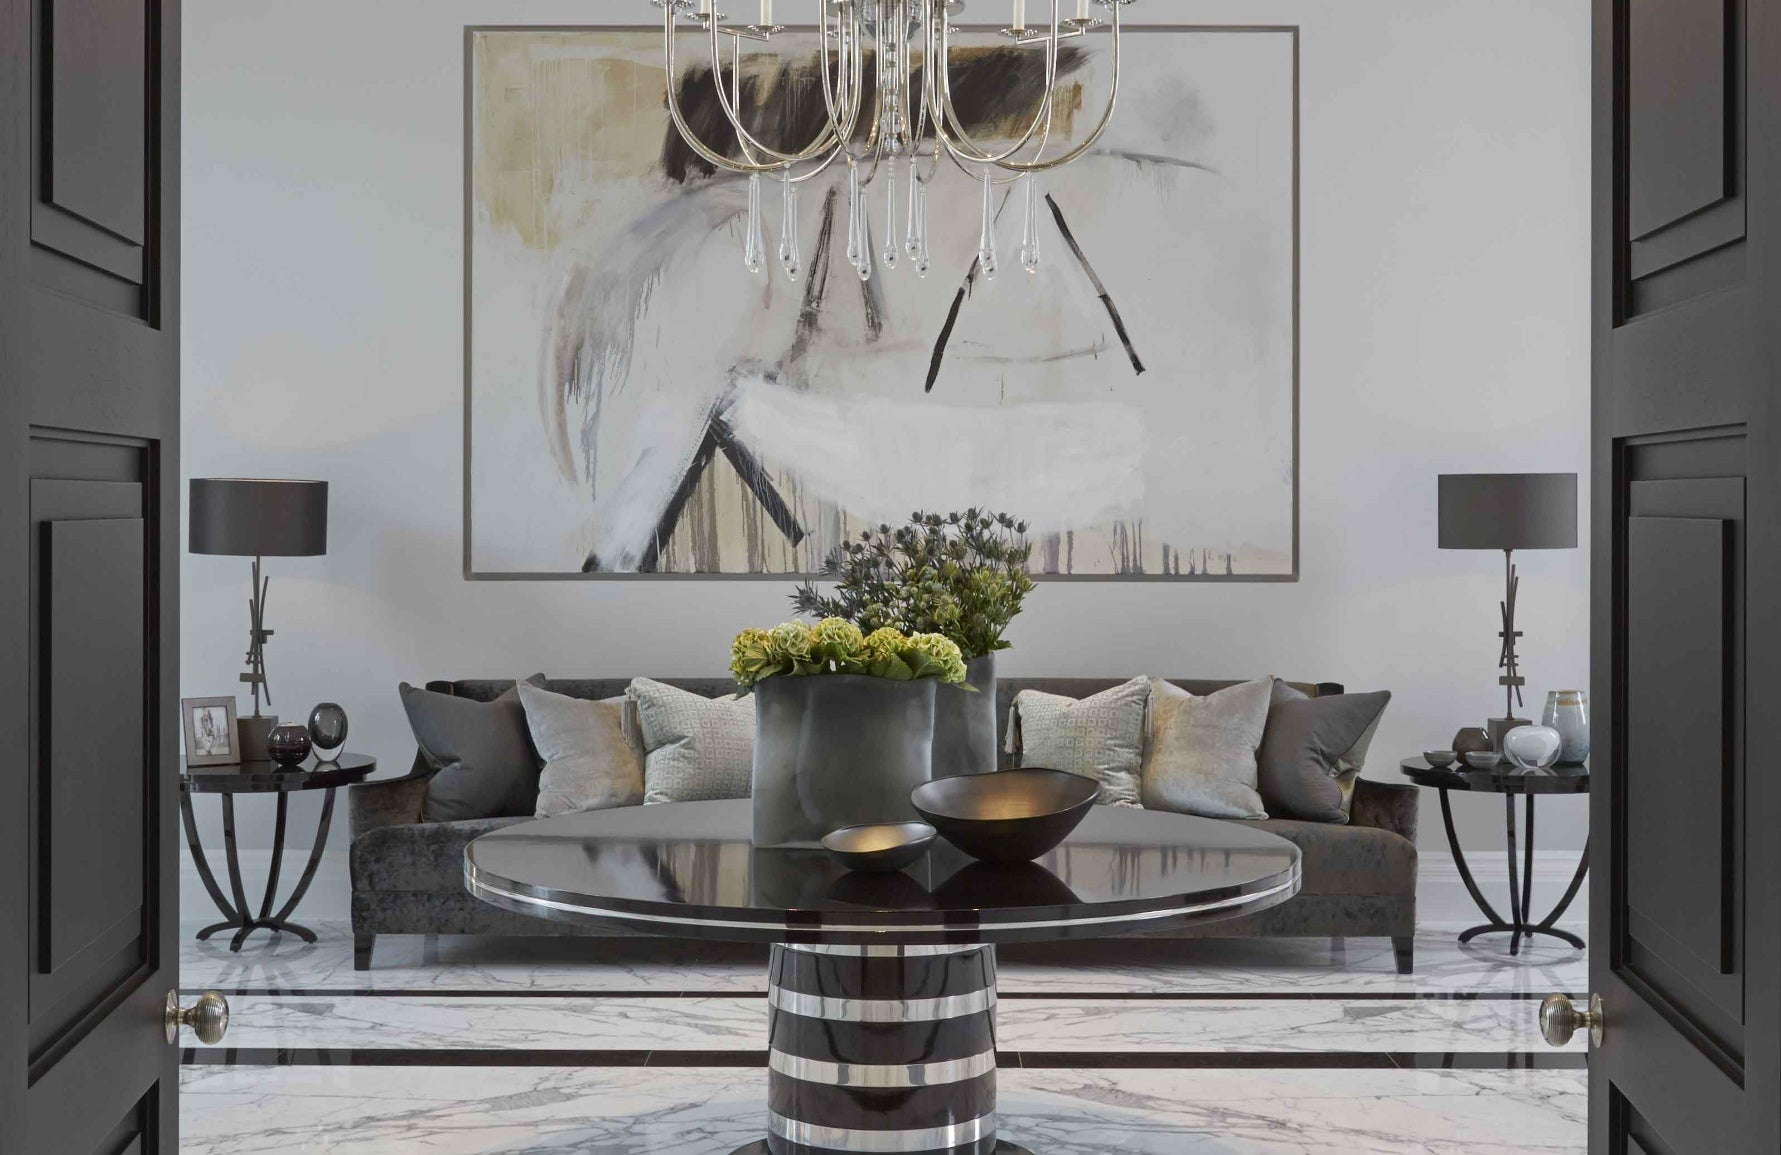 How To Style Your Round Entryway Table – Laura Hammett Green, London Interior Designer – Round Entryway Table – LuxDeco.com Style Guide